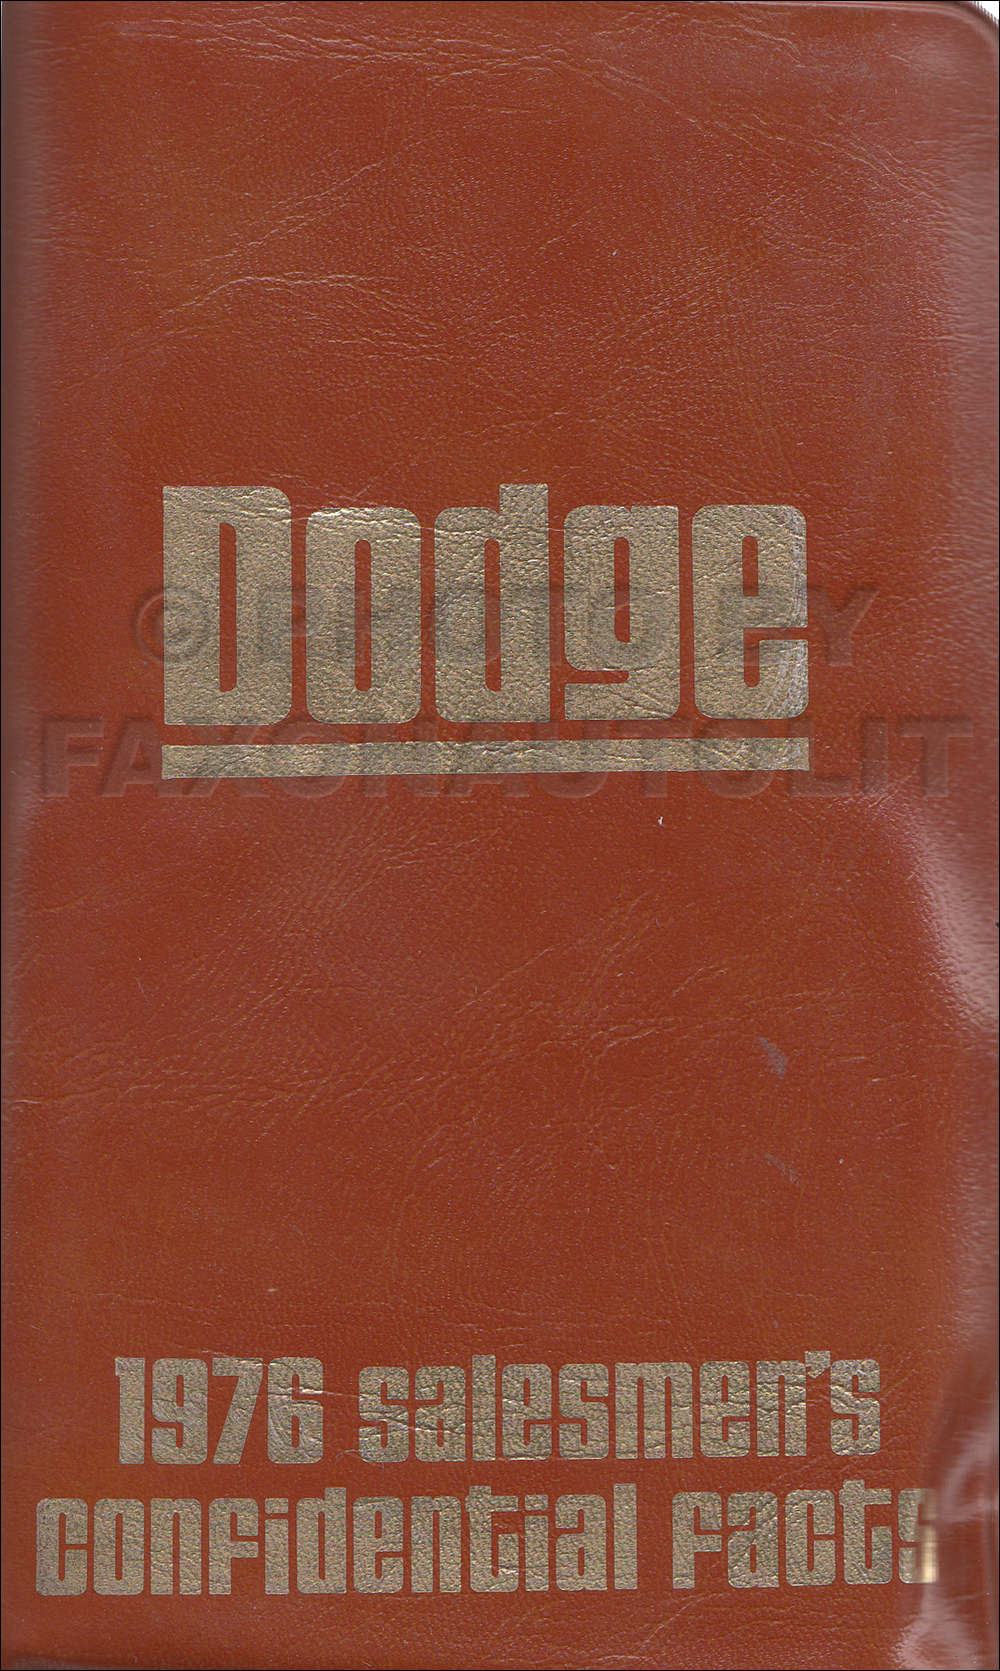 1976 Dodge Pocket Size Salesmen's Confidential Facts Guide Original